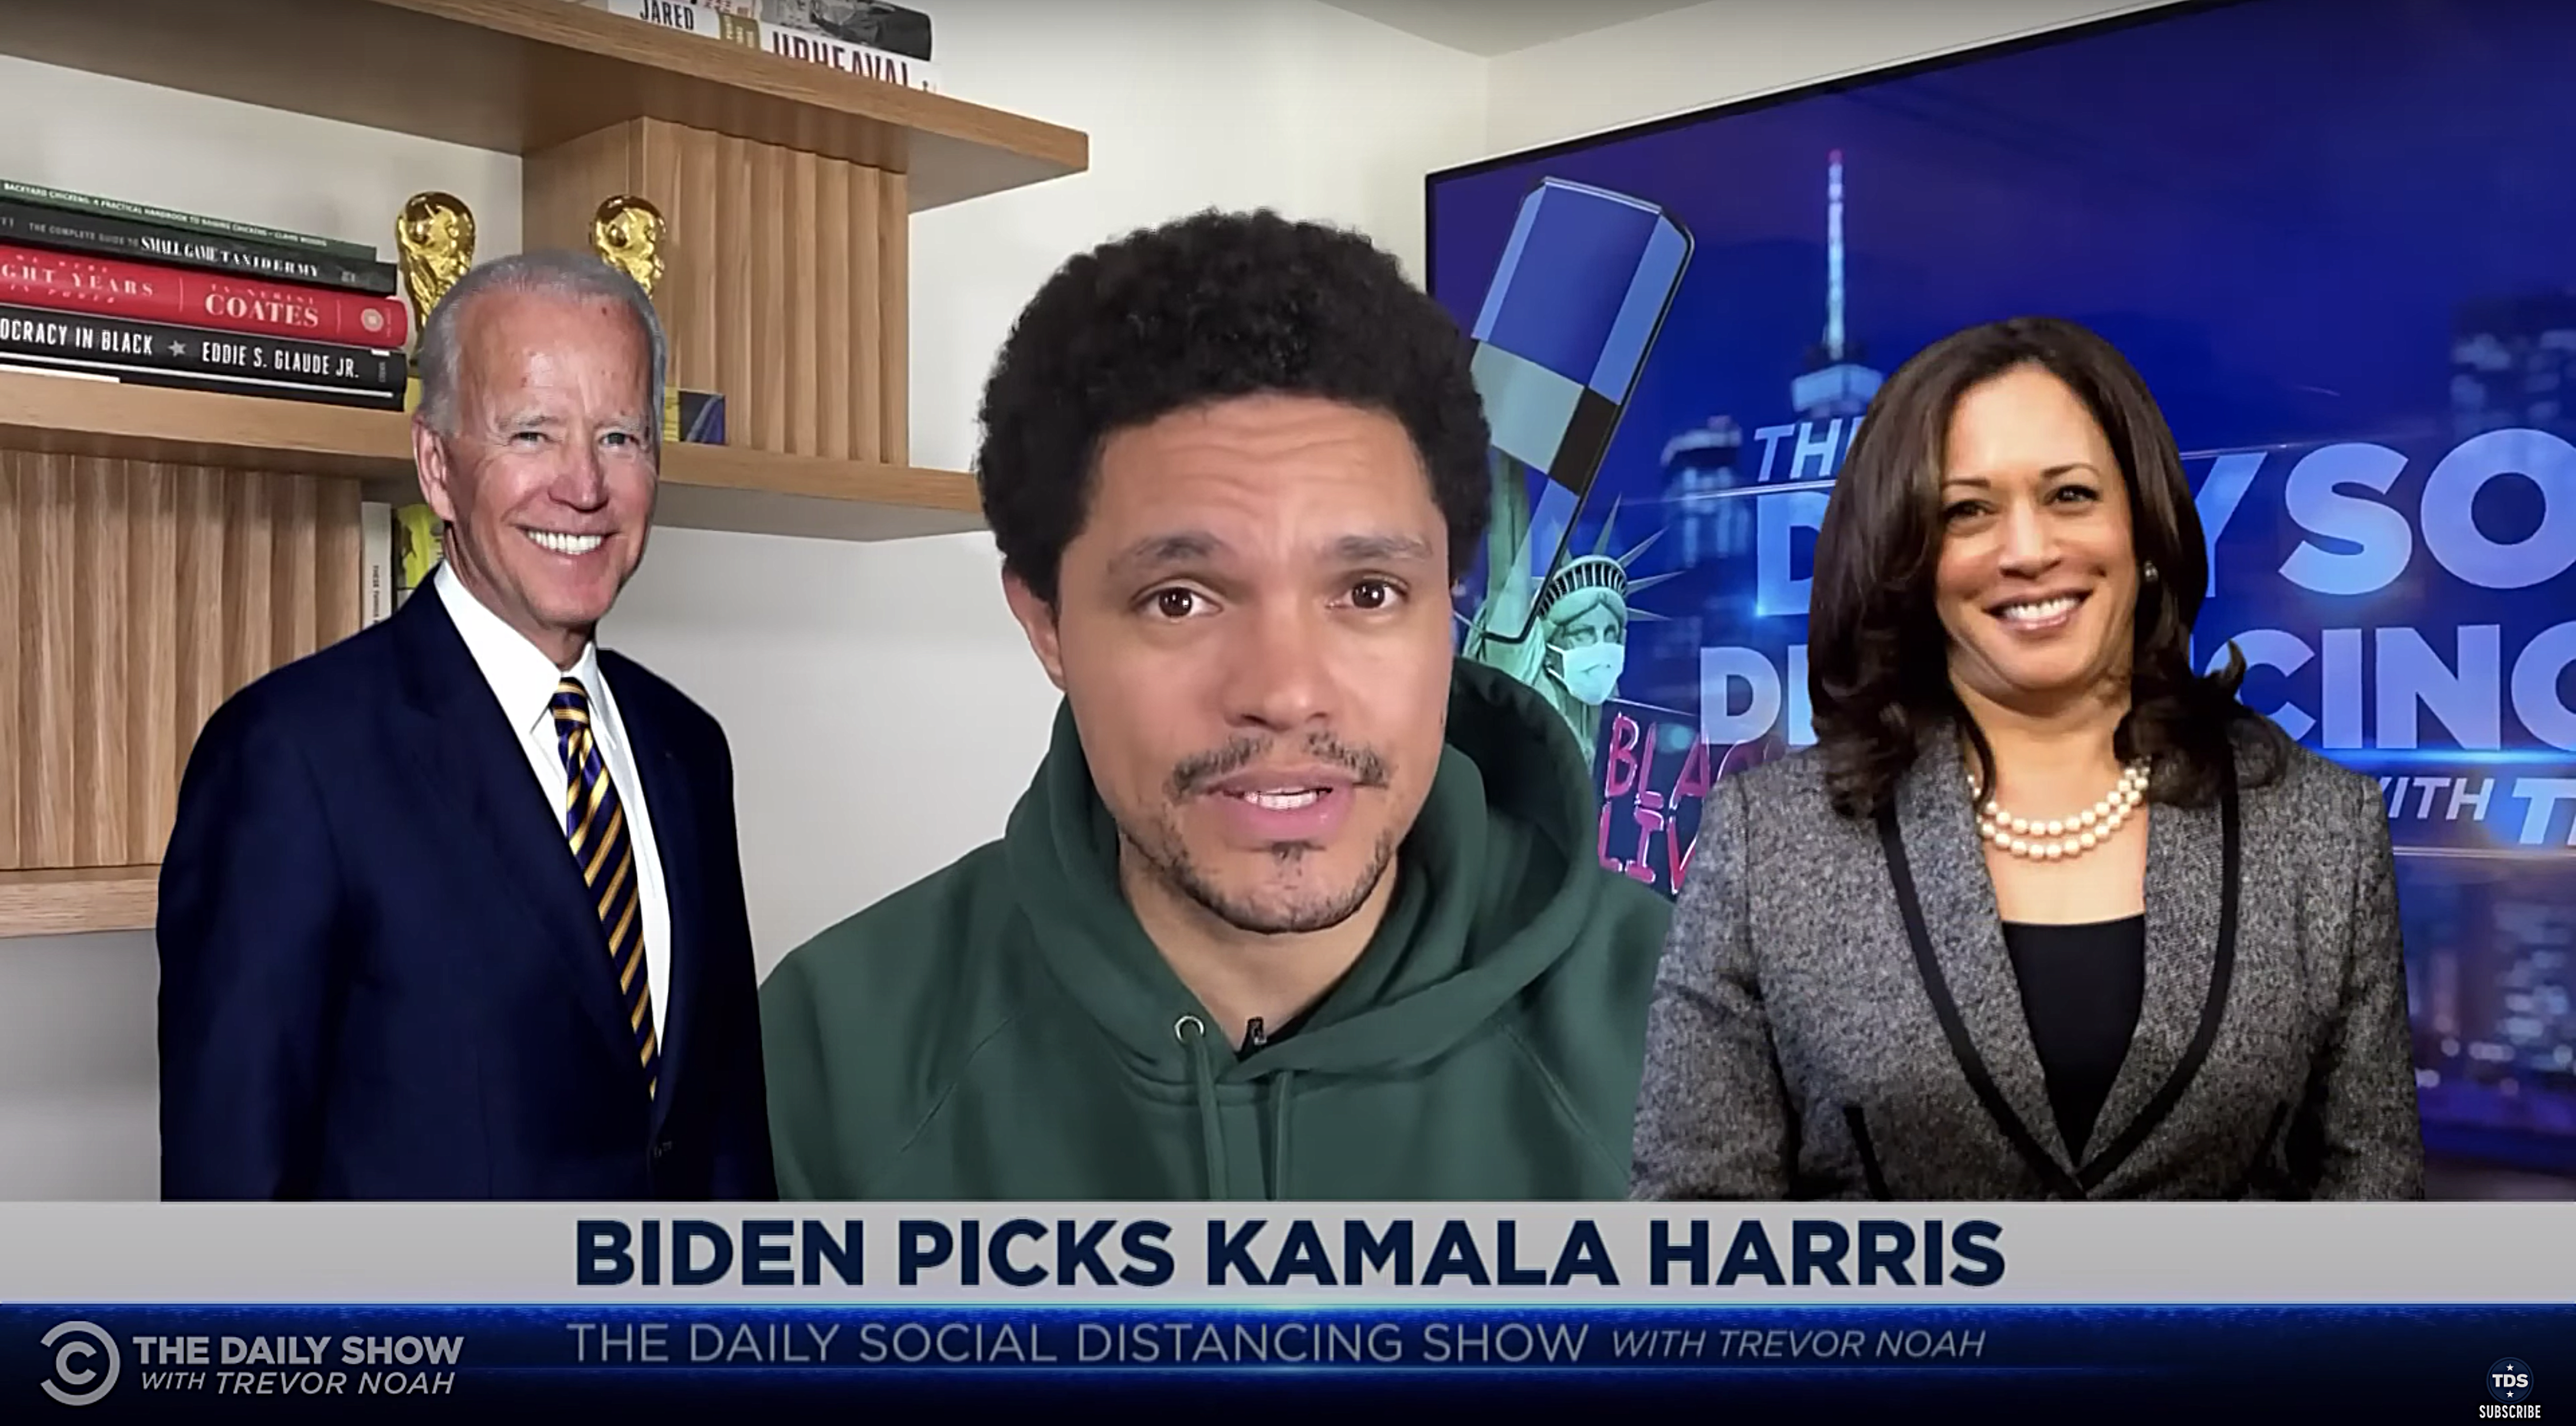 Trevor Noah Reacts to Joe Biden's Decision to Pick Kamala Harris for Vice President